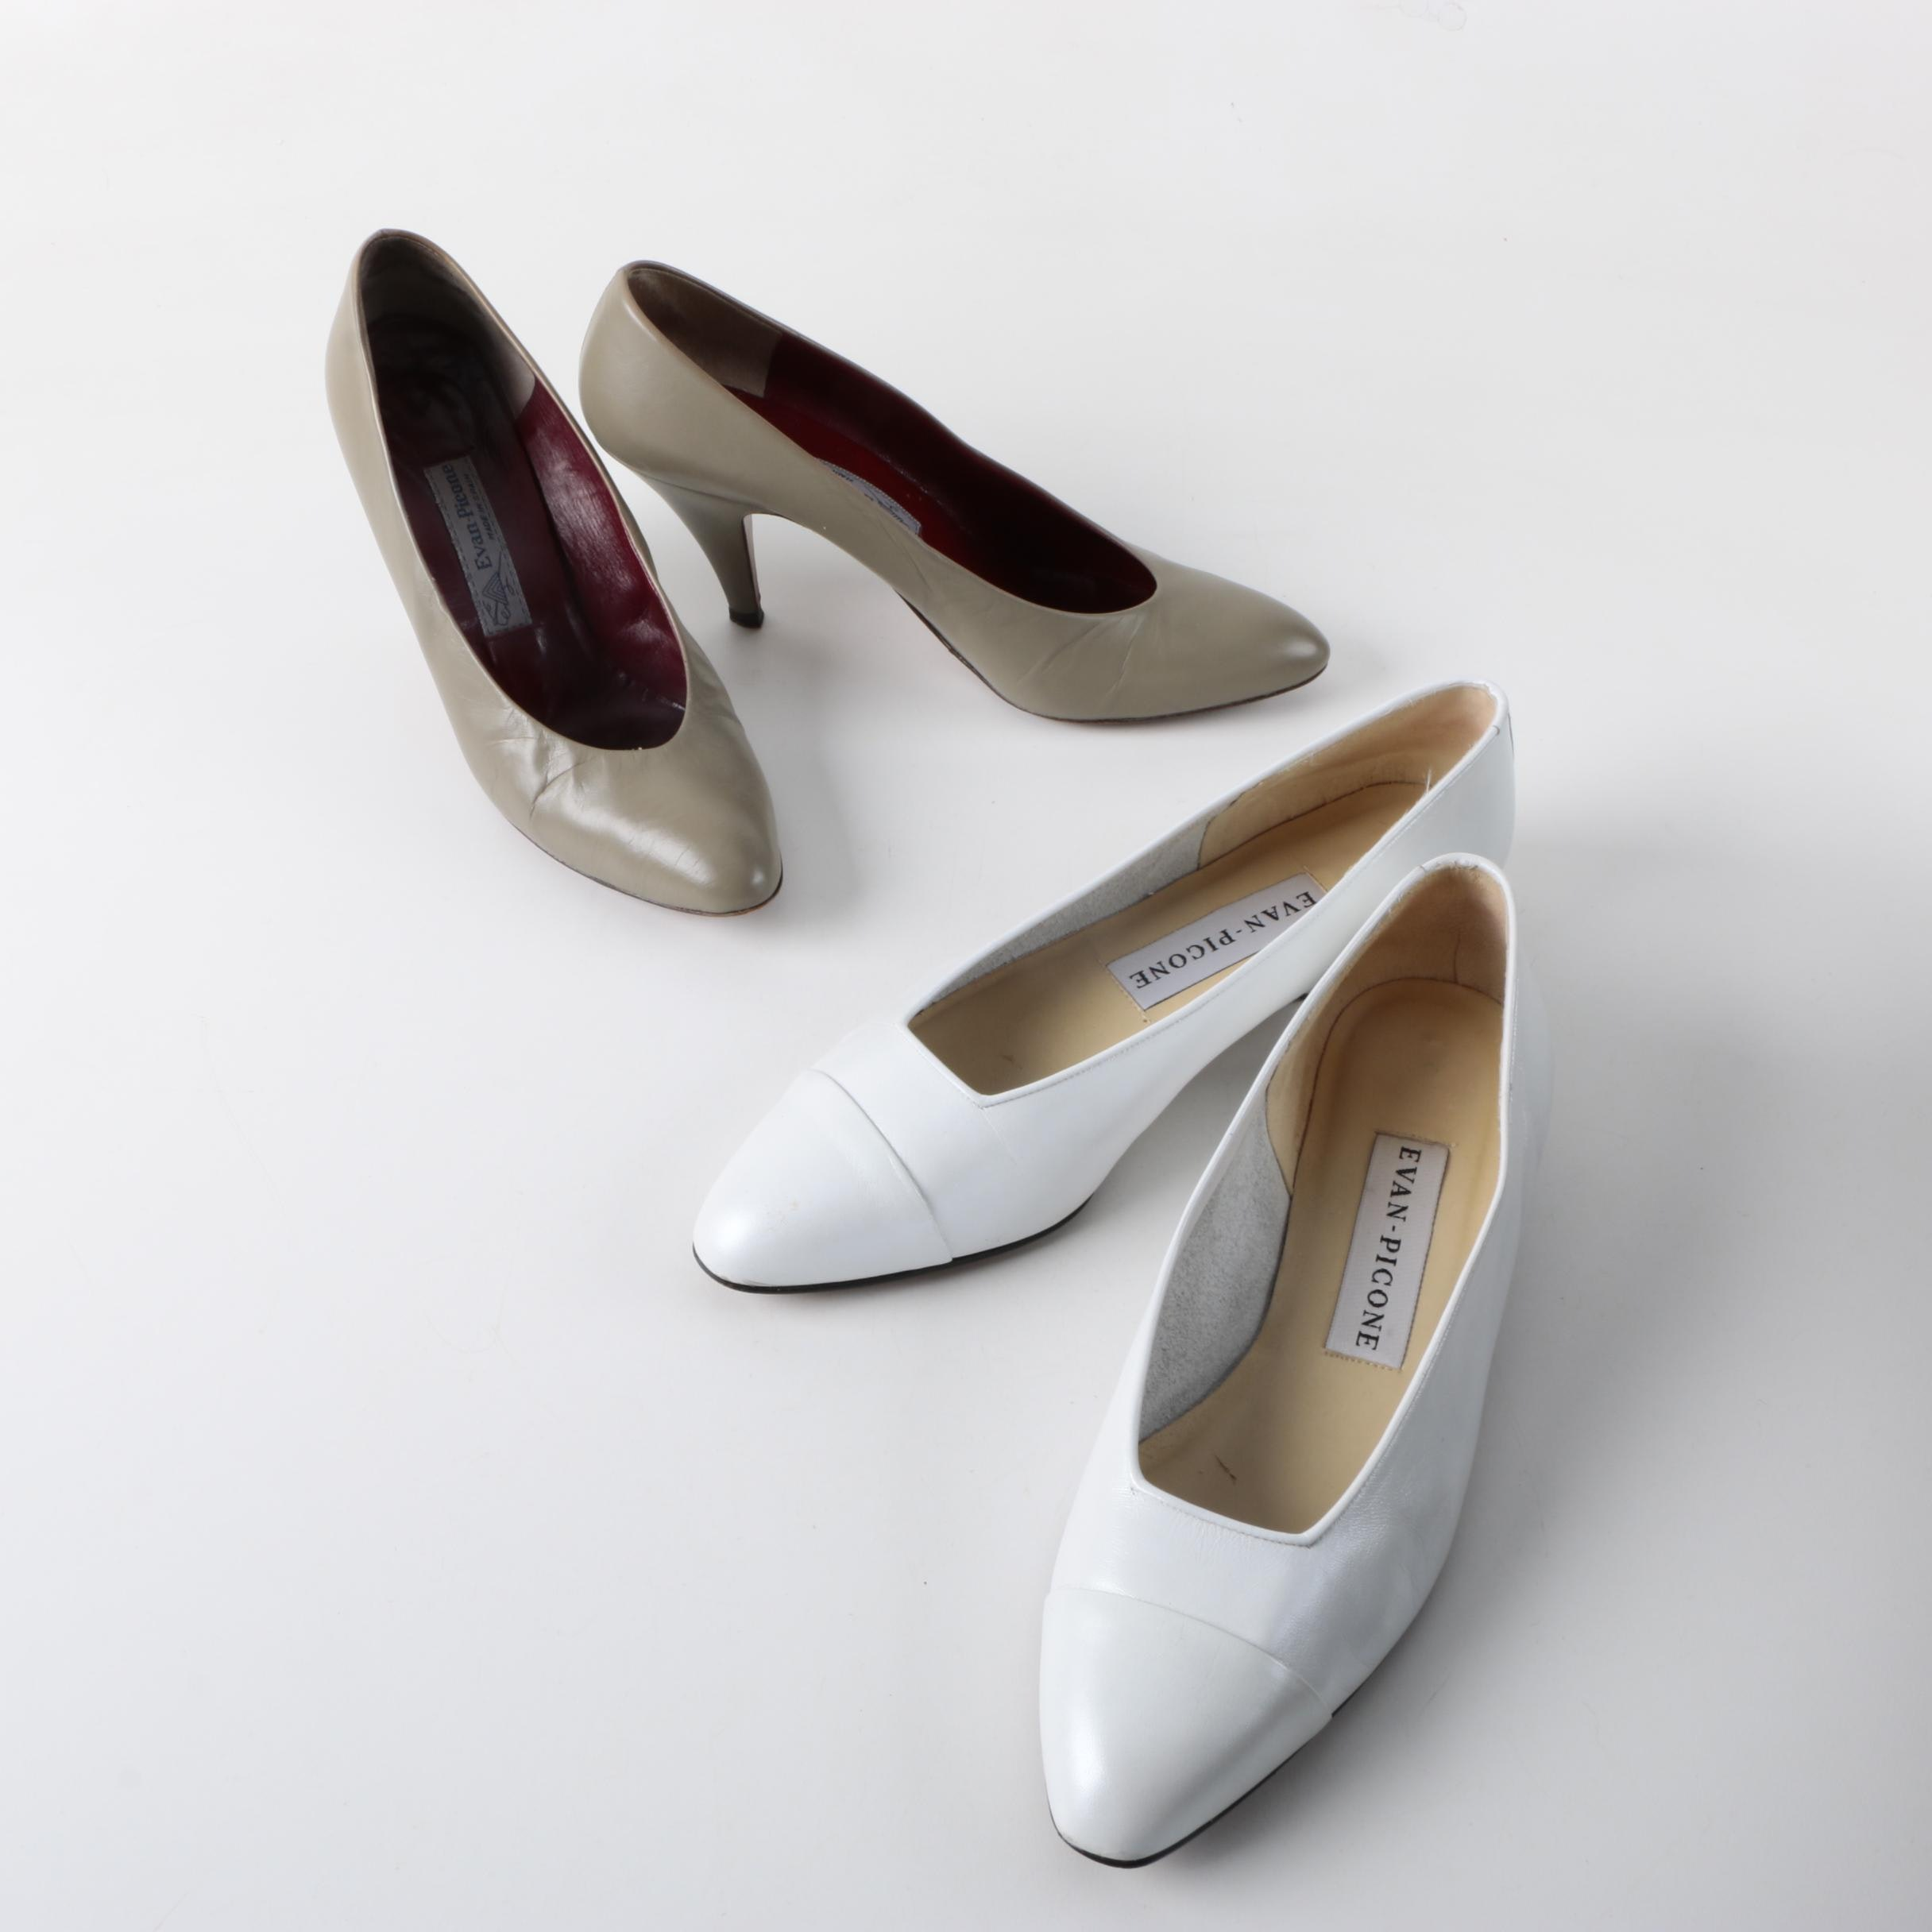 Women's Evan Picone High Heels and Flats